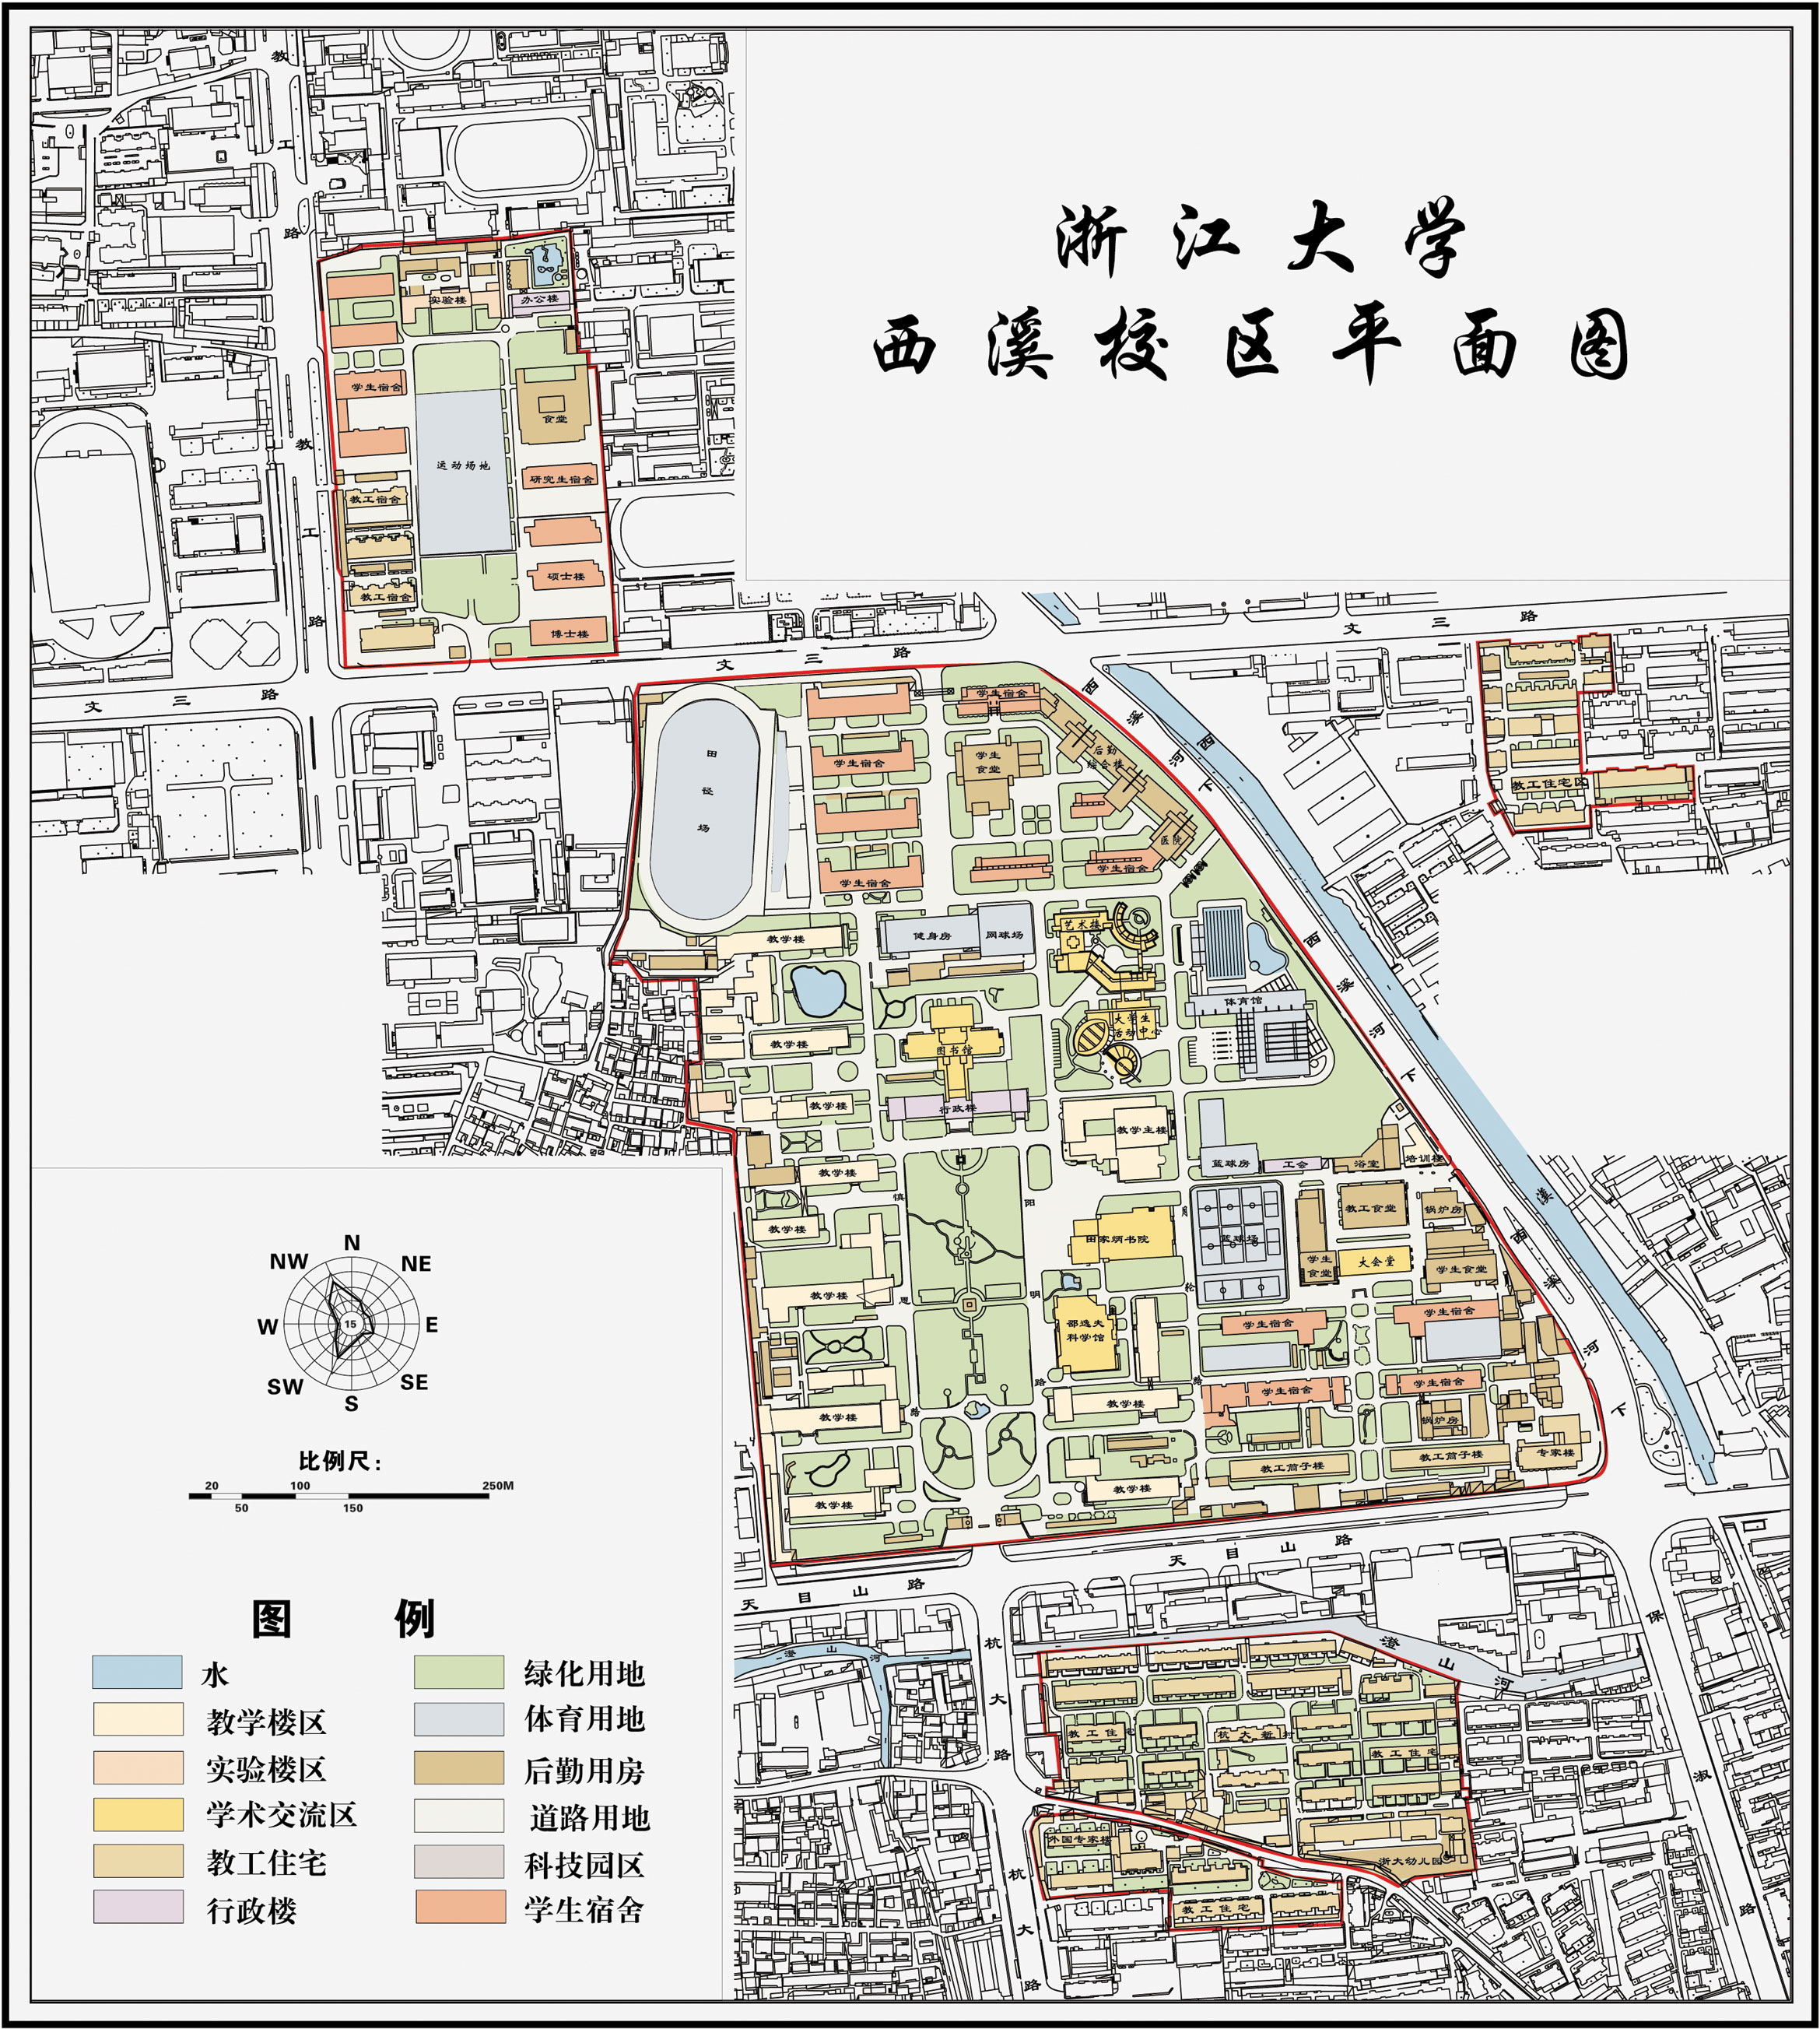 ZJU Xixi Campus Map